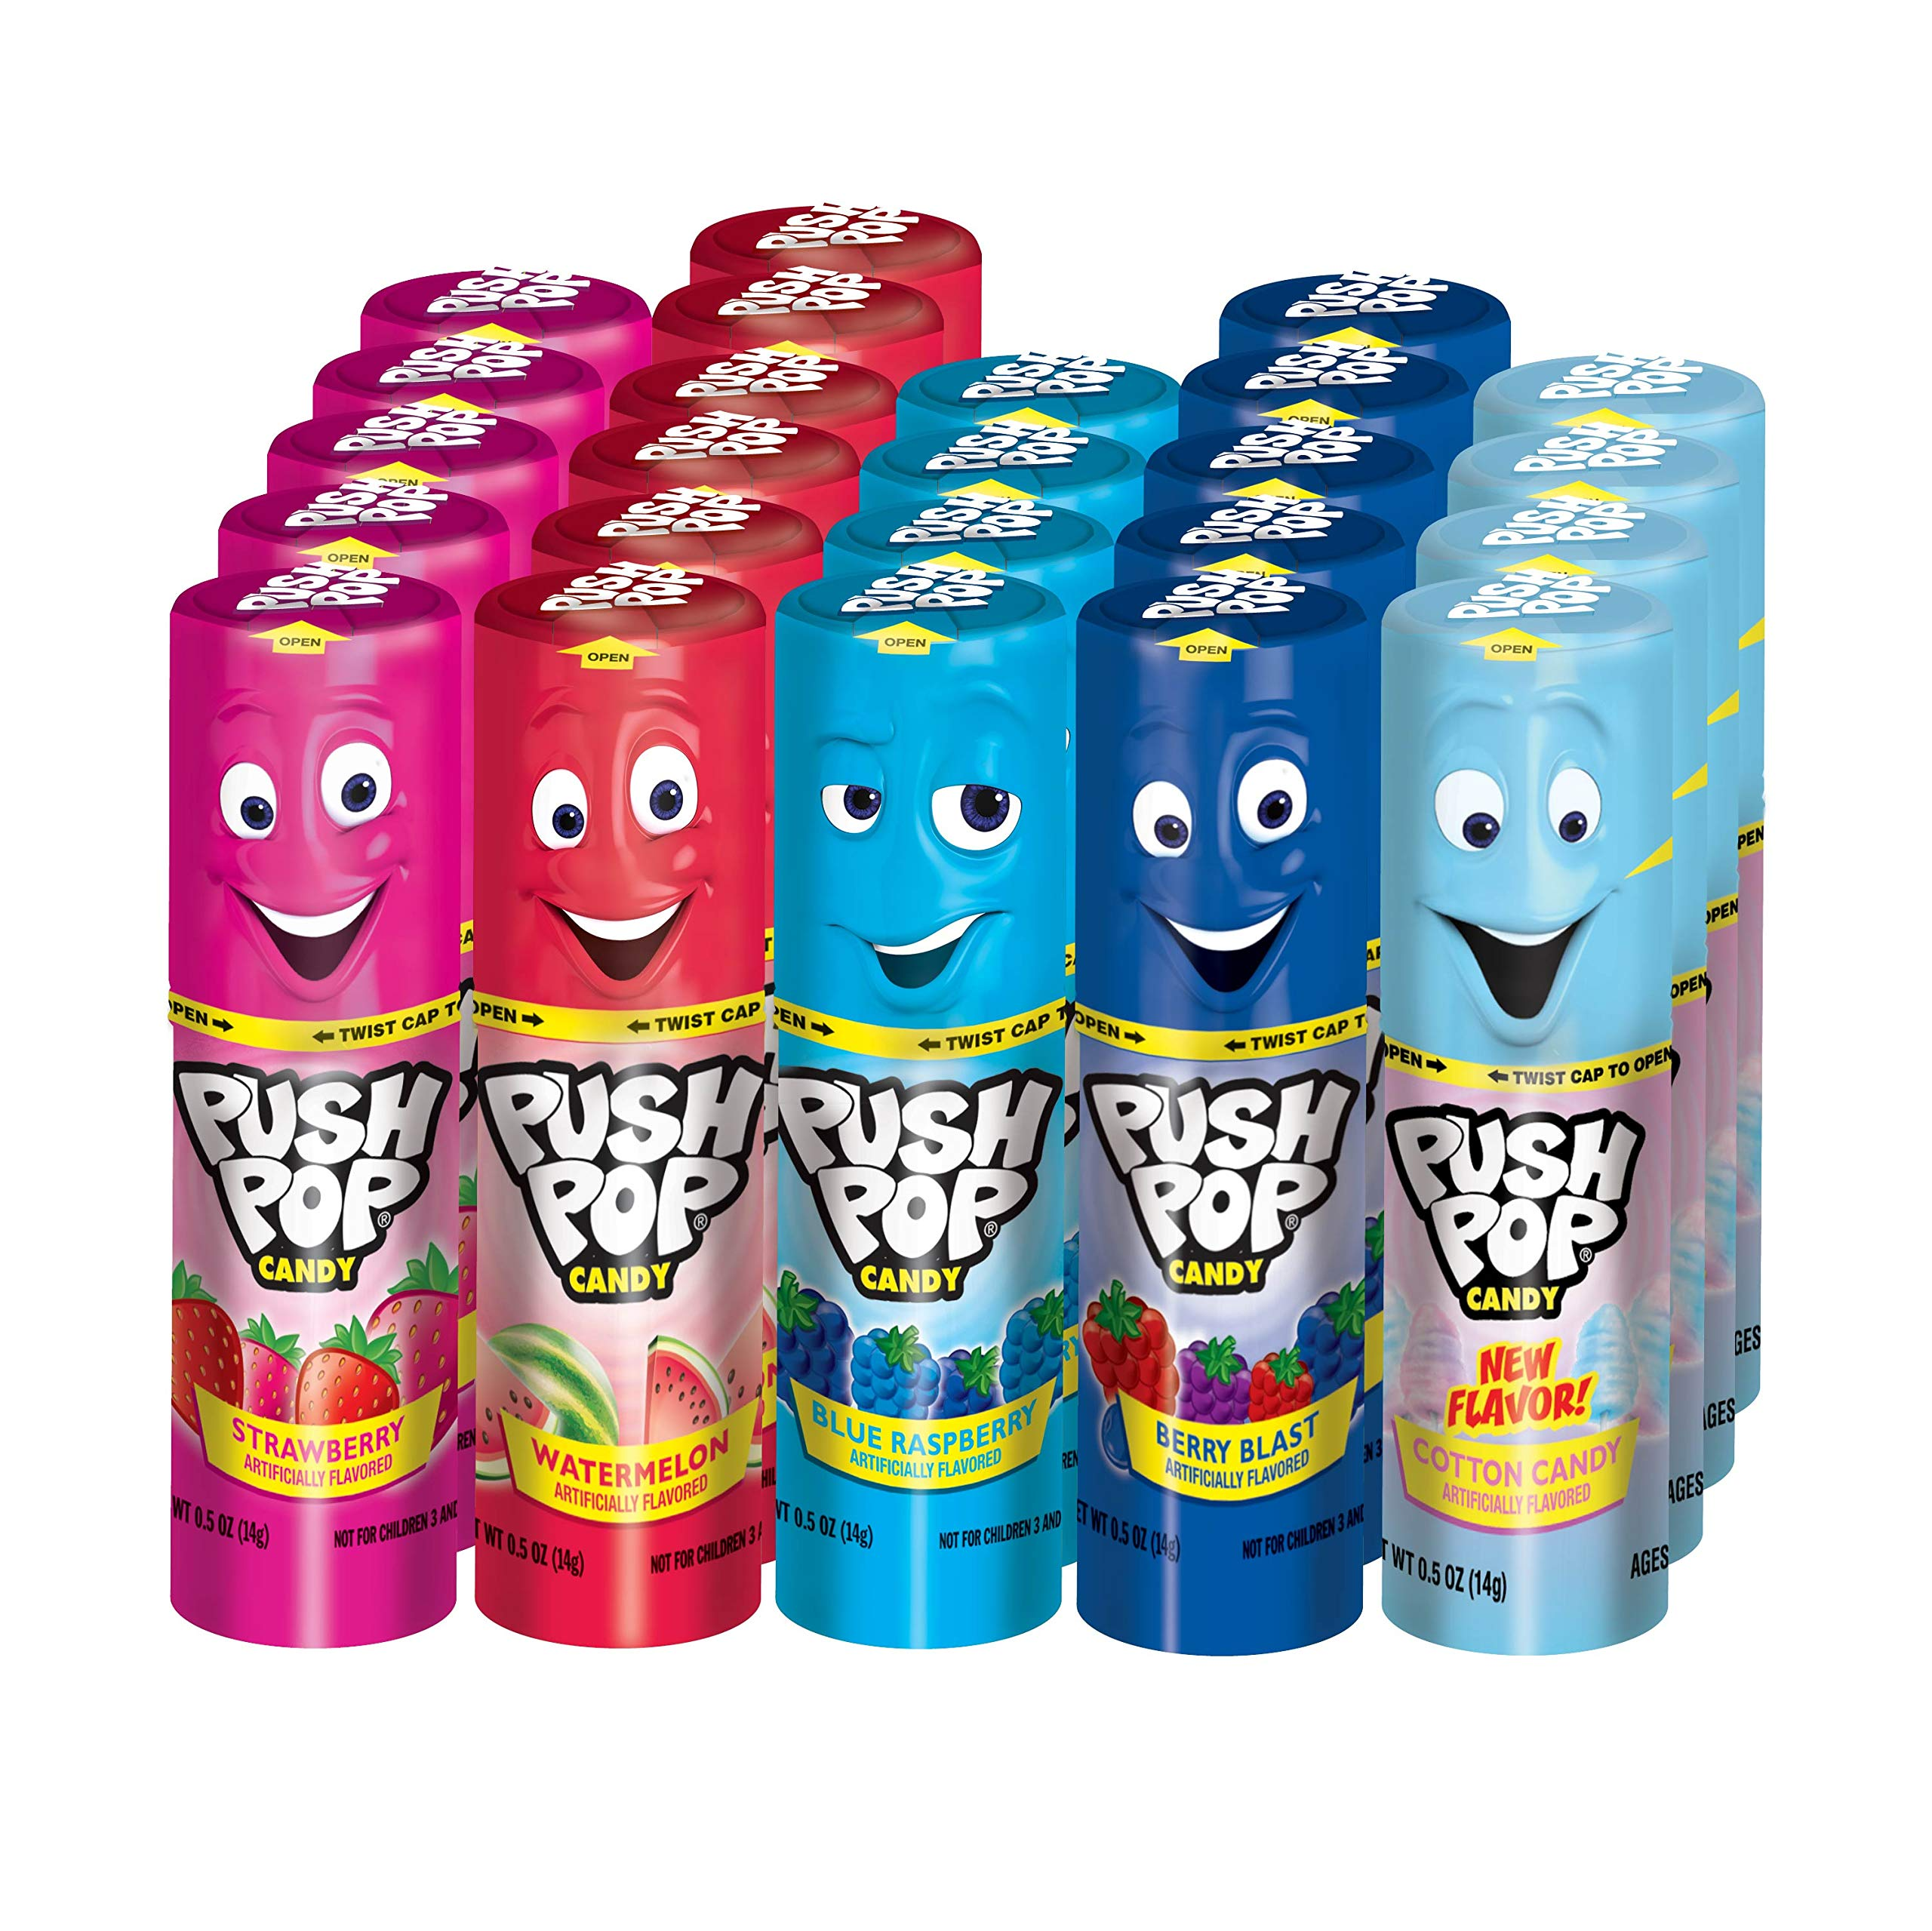 Push Pop Candy Assortment in Bulk, 12 Ounce (Pack of 24)